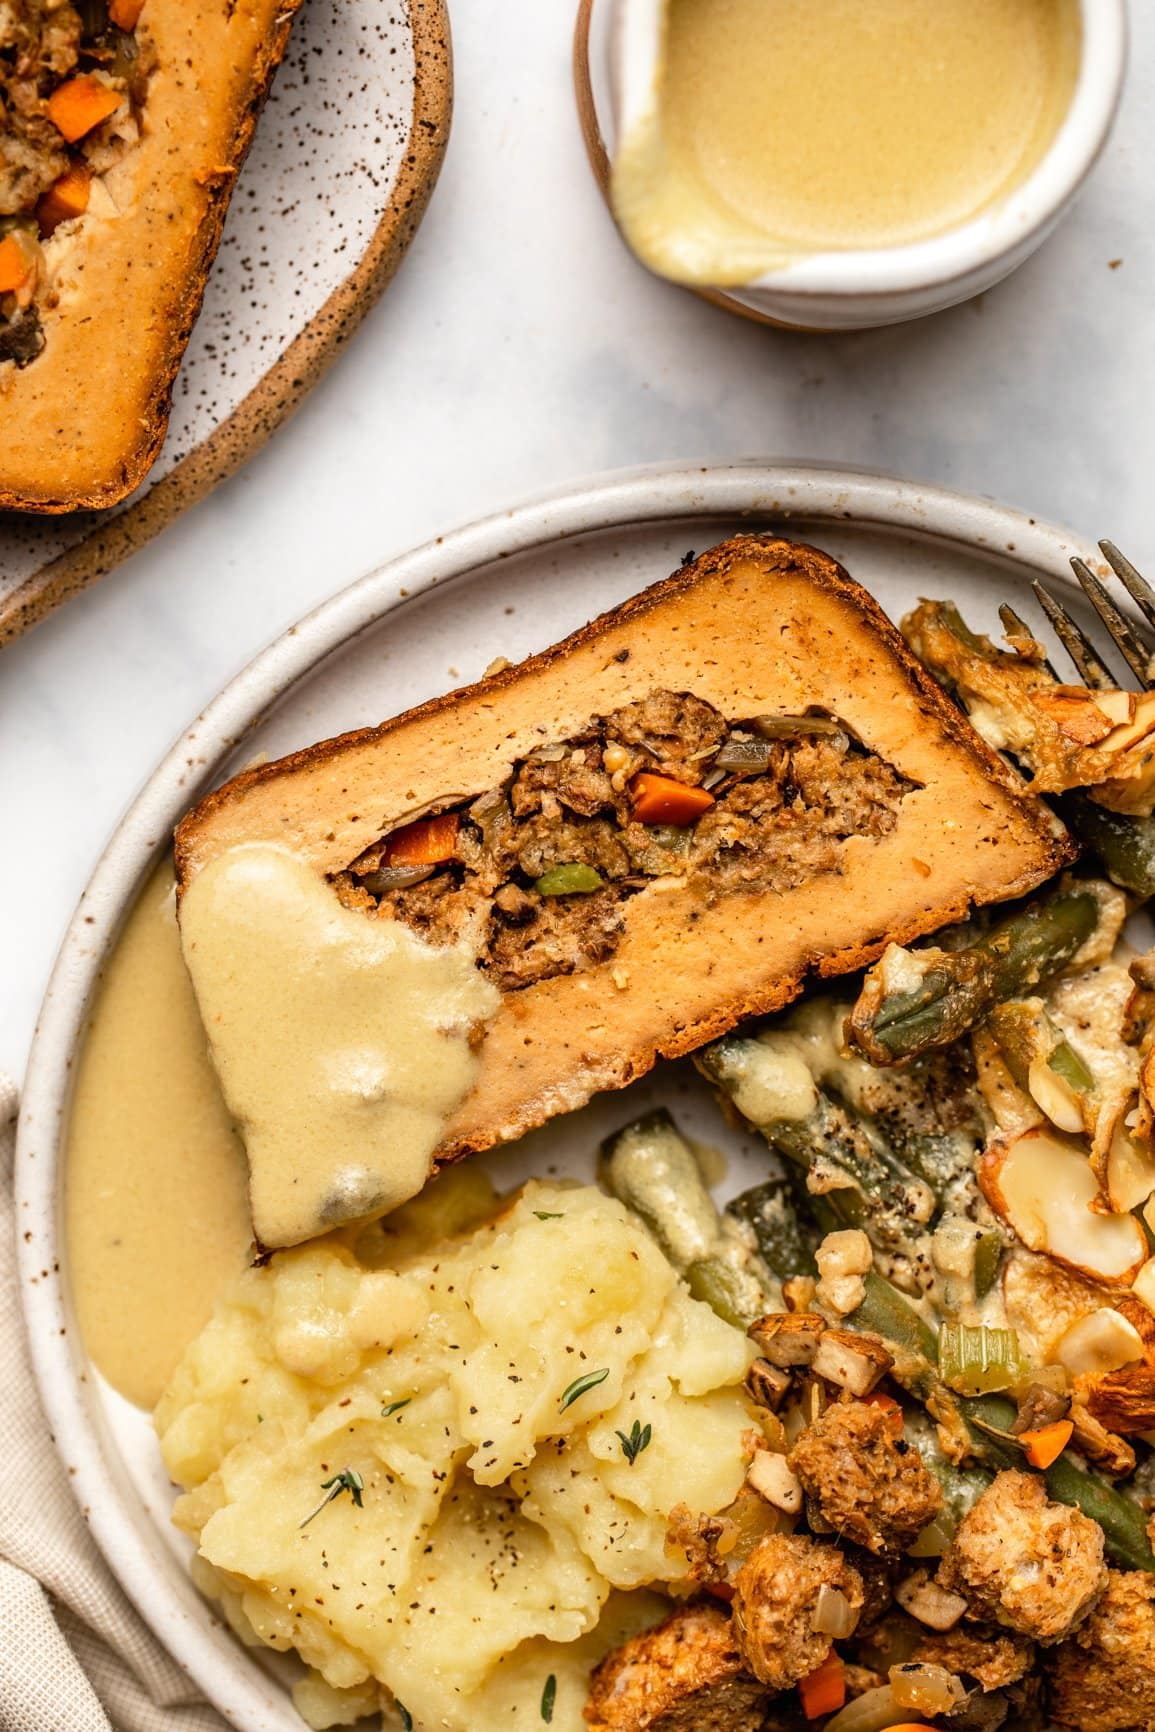 photo of slice of holiday roast on plate with mashed potatoes, gravy, green bean casserole, and stuffing